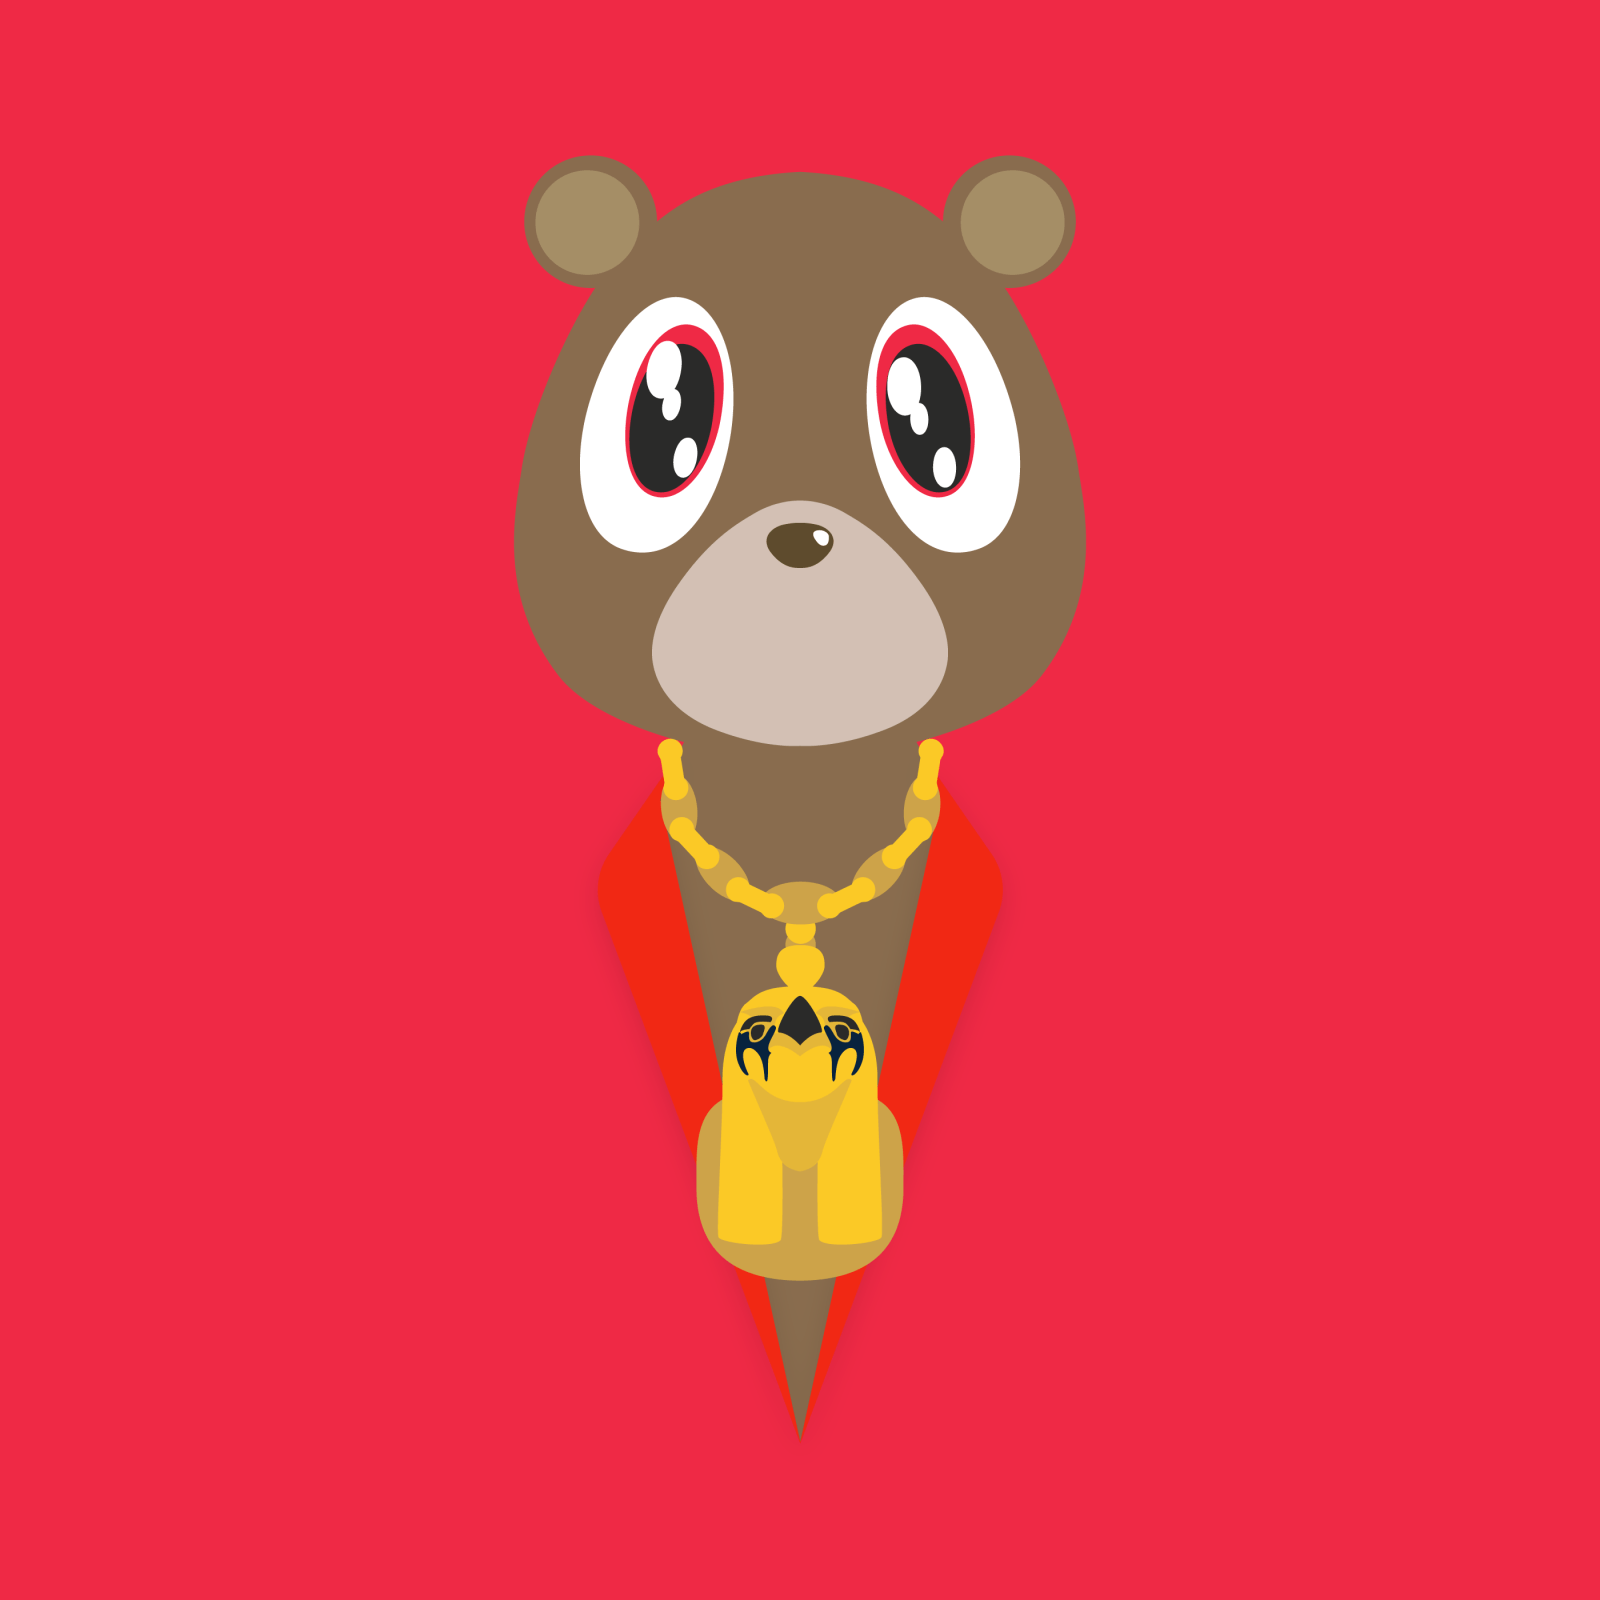 Pin By Dina On Kanye West Bear In 2020 Kanye West Painting Beautiful Dark Twisted Fantasy Kanye West Bear